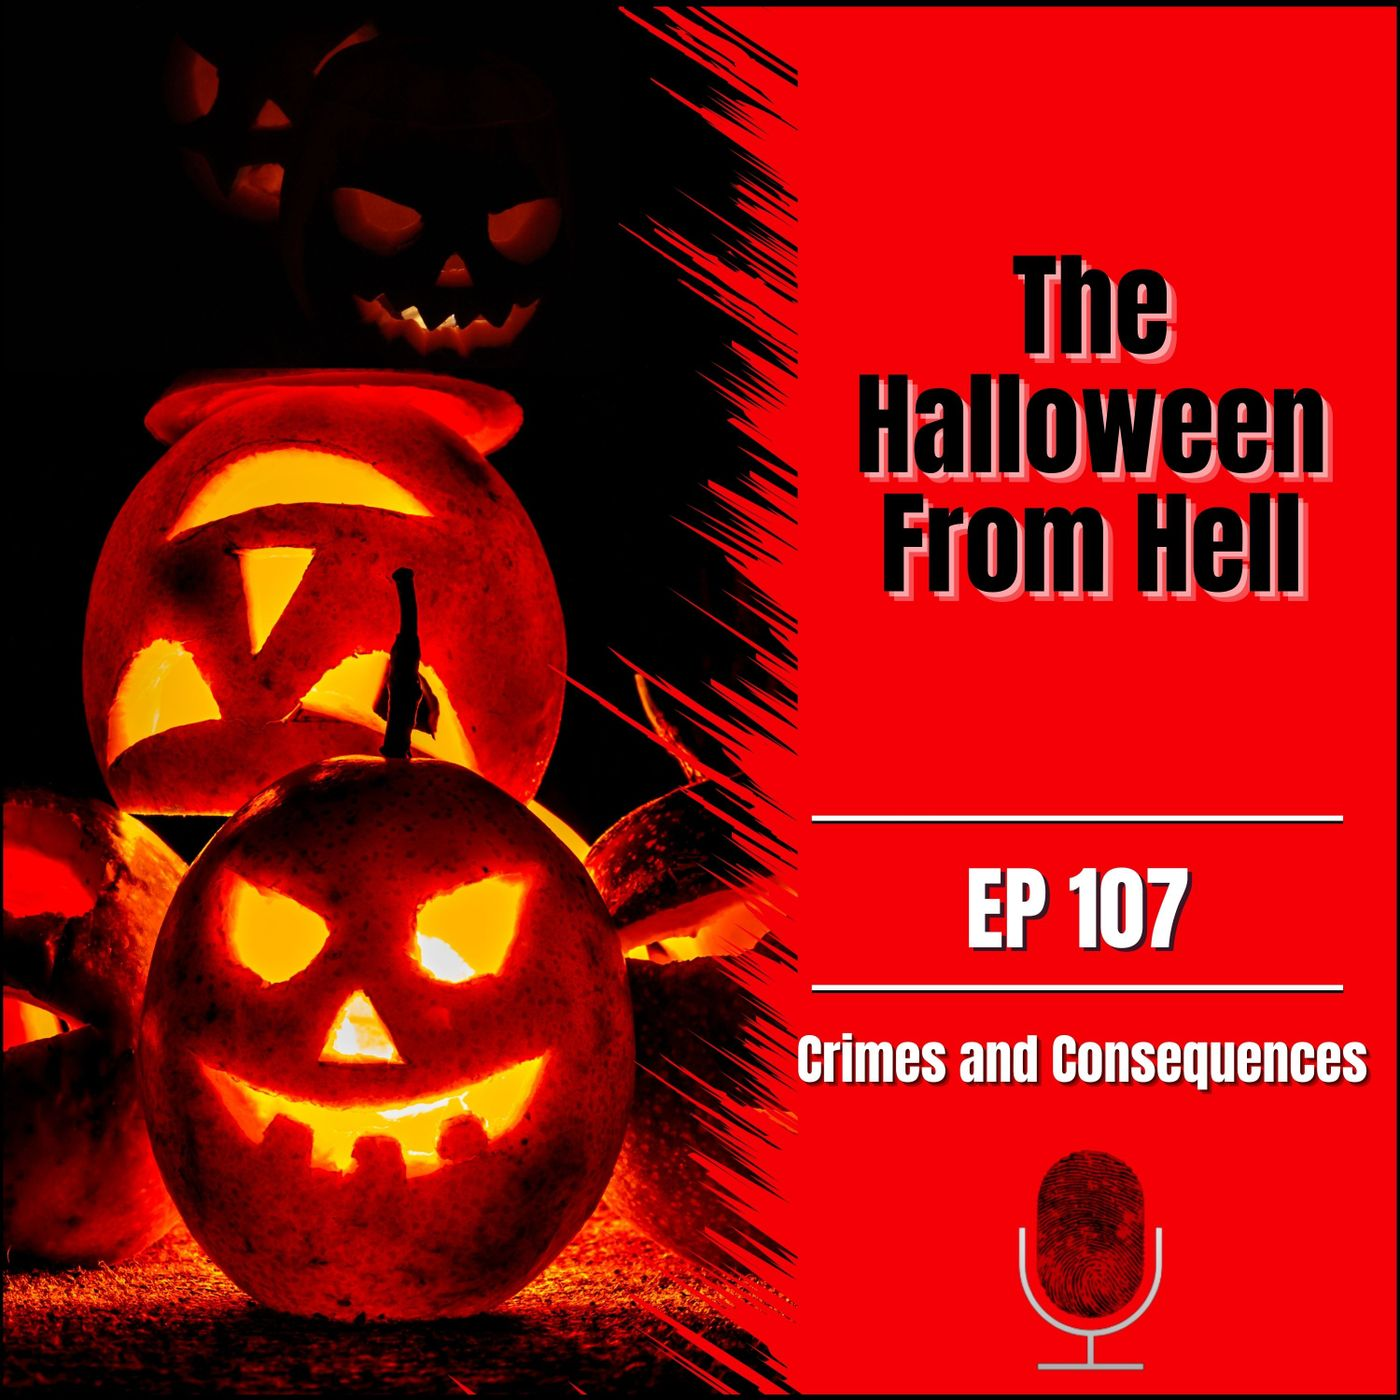 EP107: The Halloween From Hell